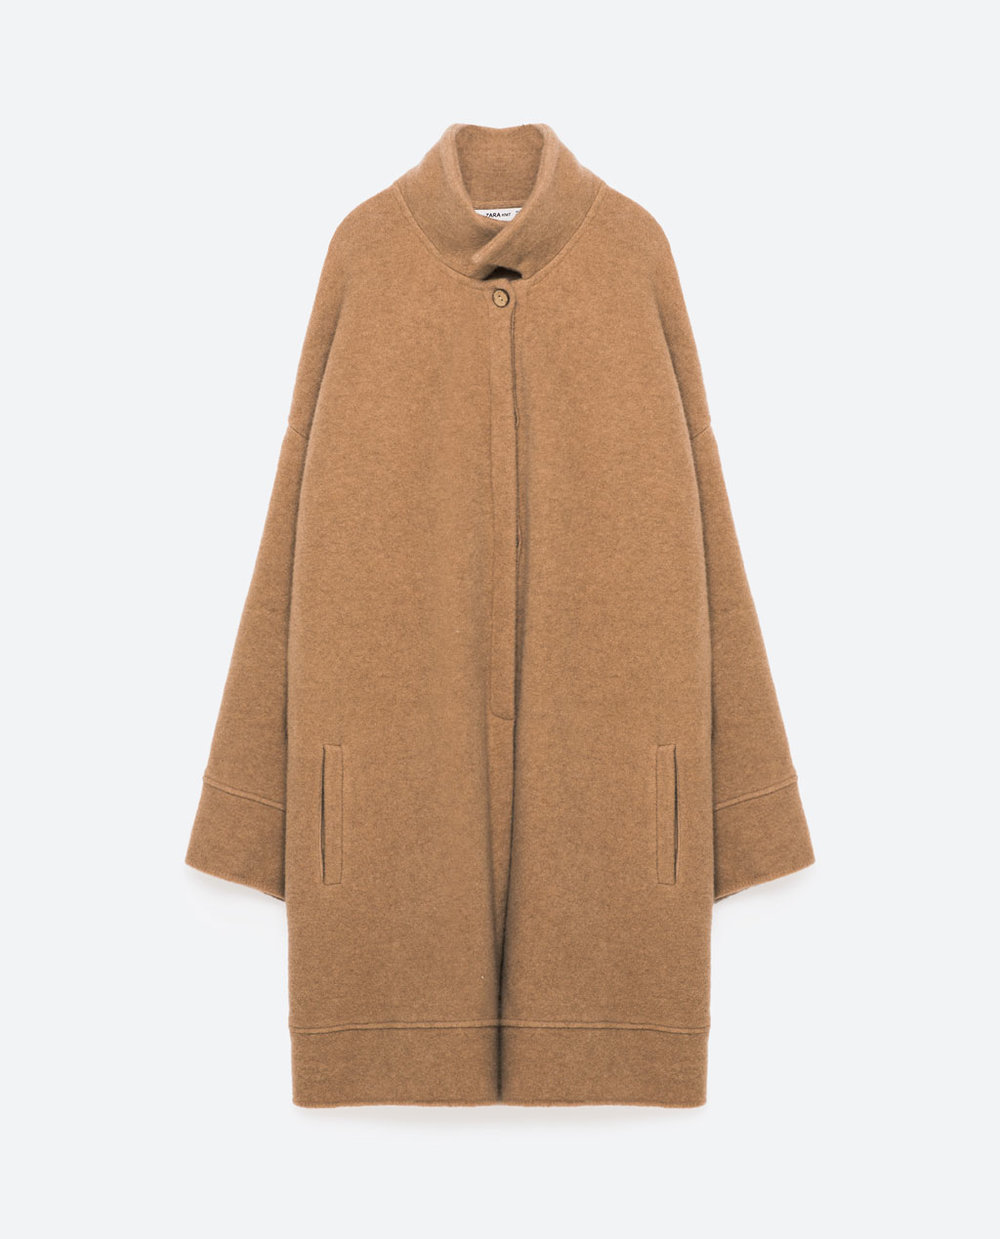 Zara High Collar Coat